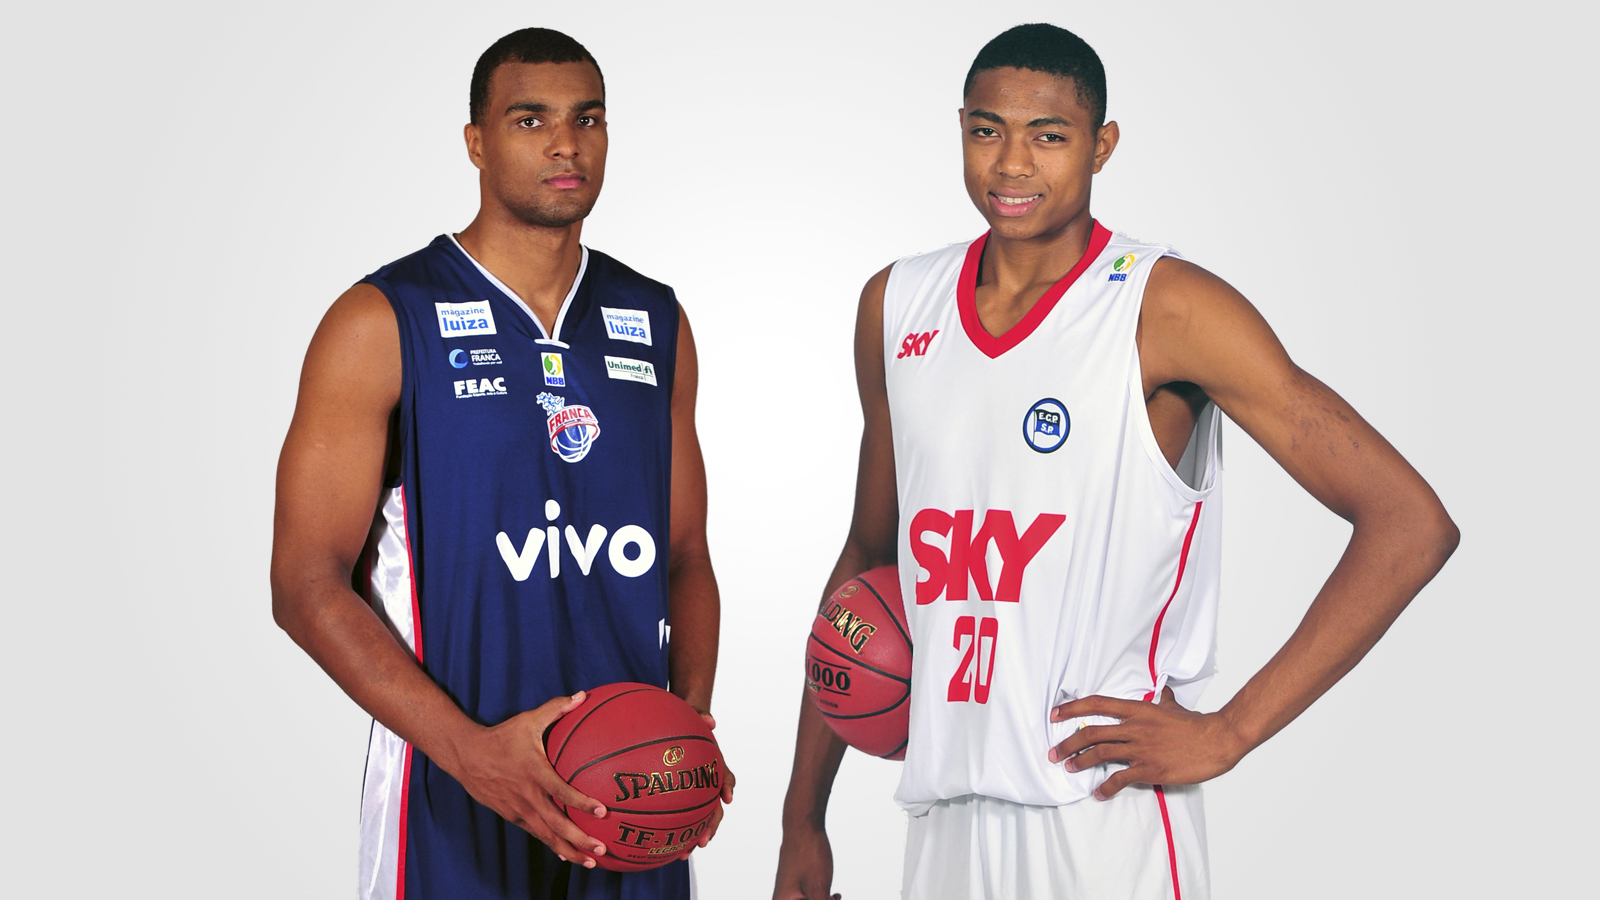 Inscritos no Draft 2014, Lucas (à esq.) e Bruno (à dir.) podem ingressar na NBA (Arte/LNB)